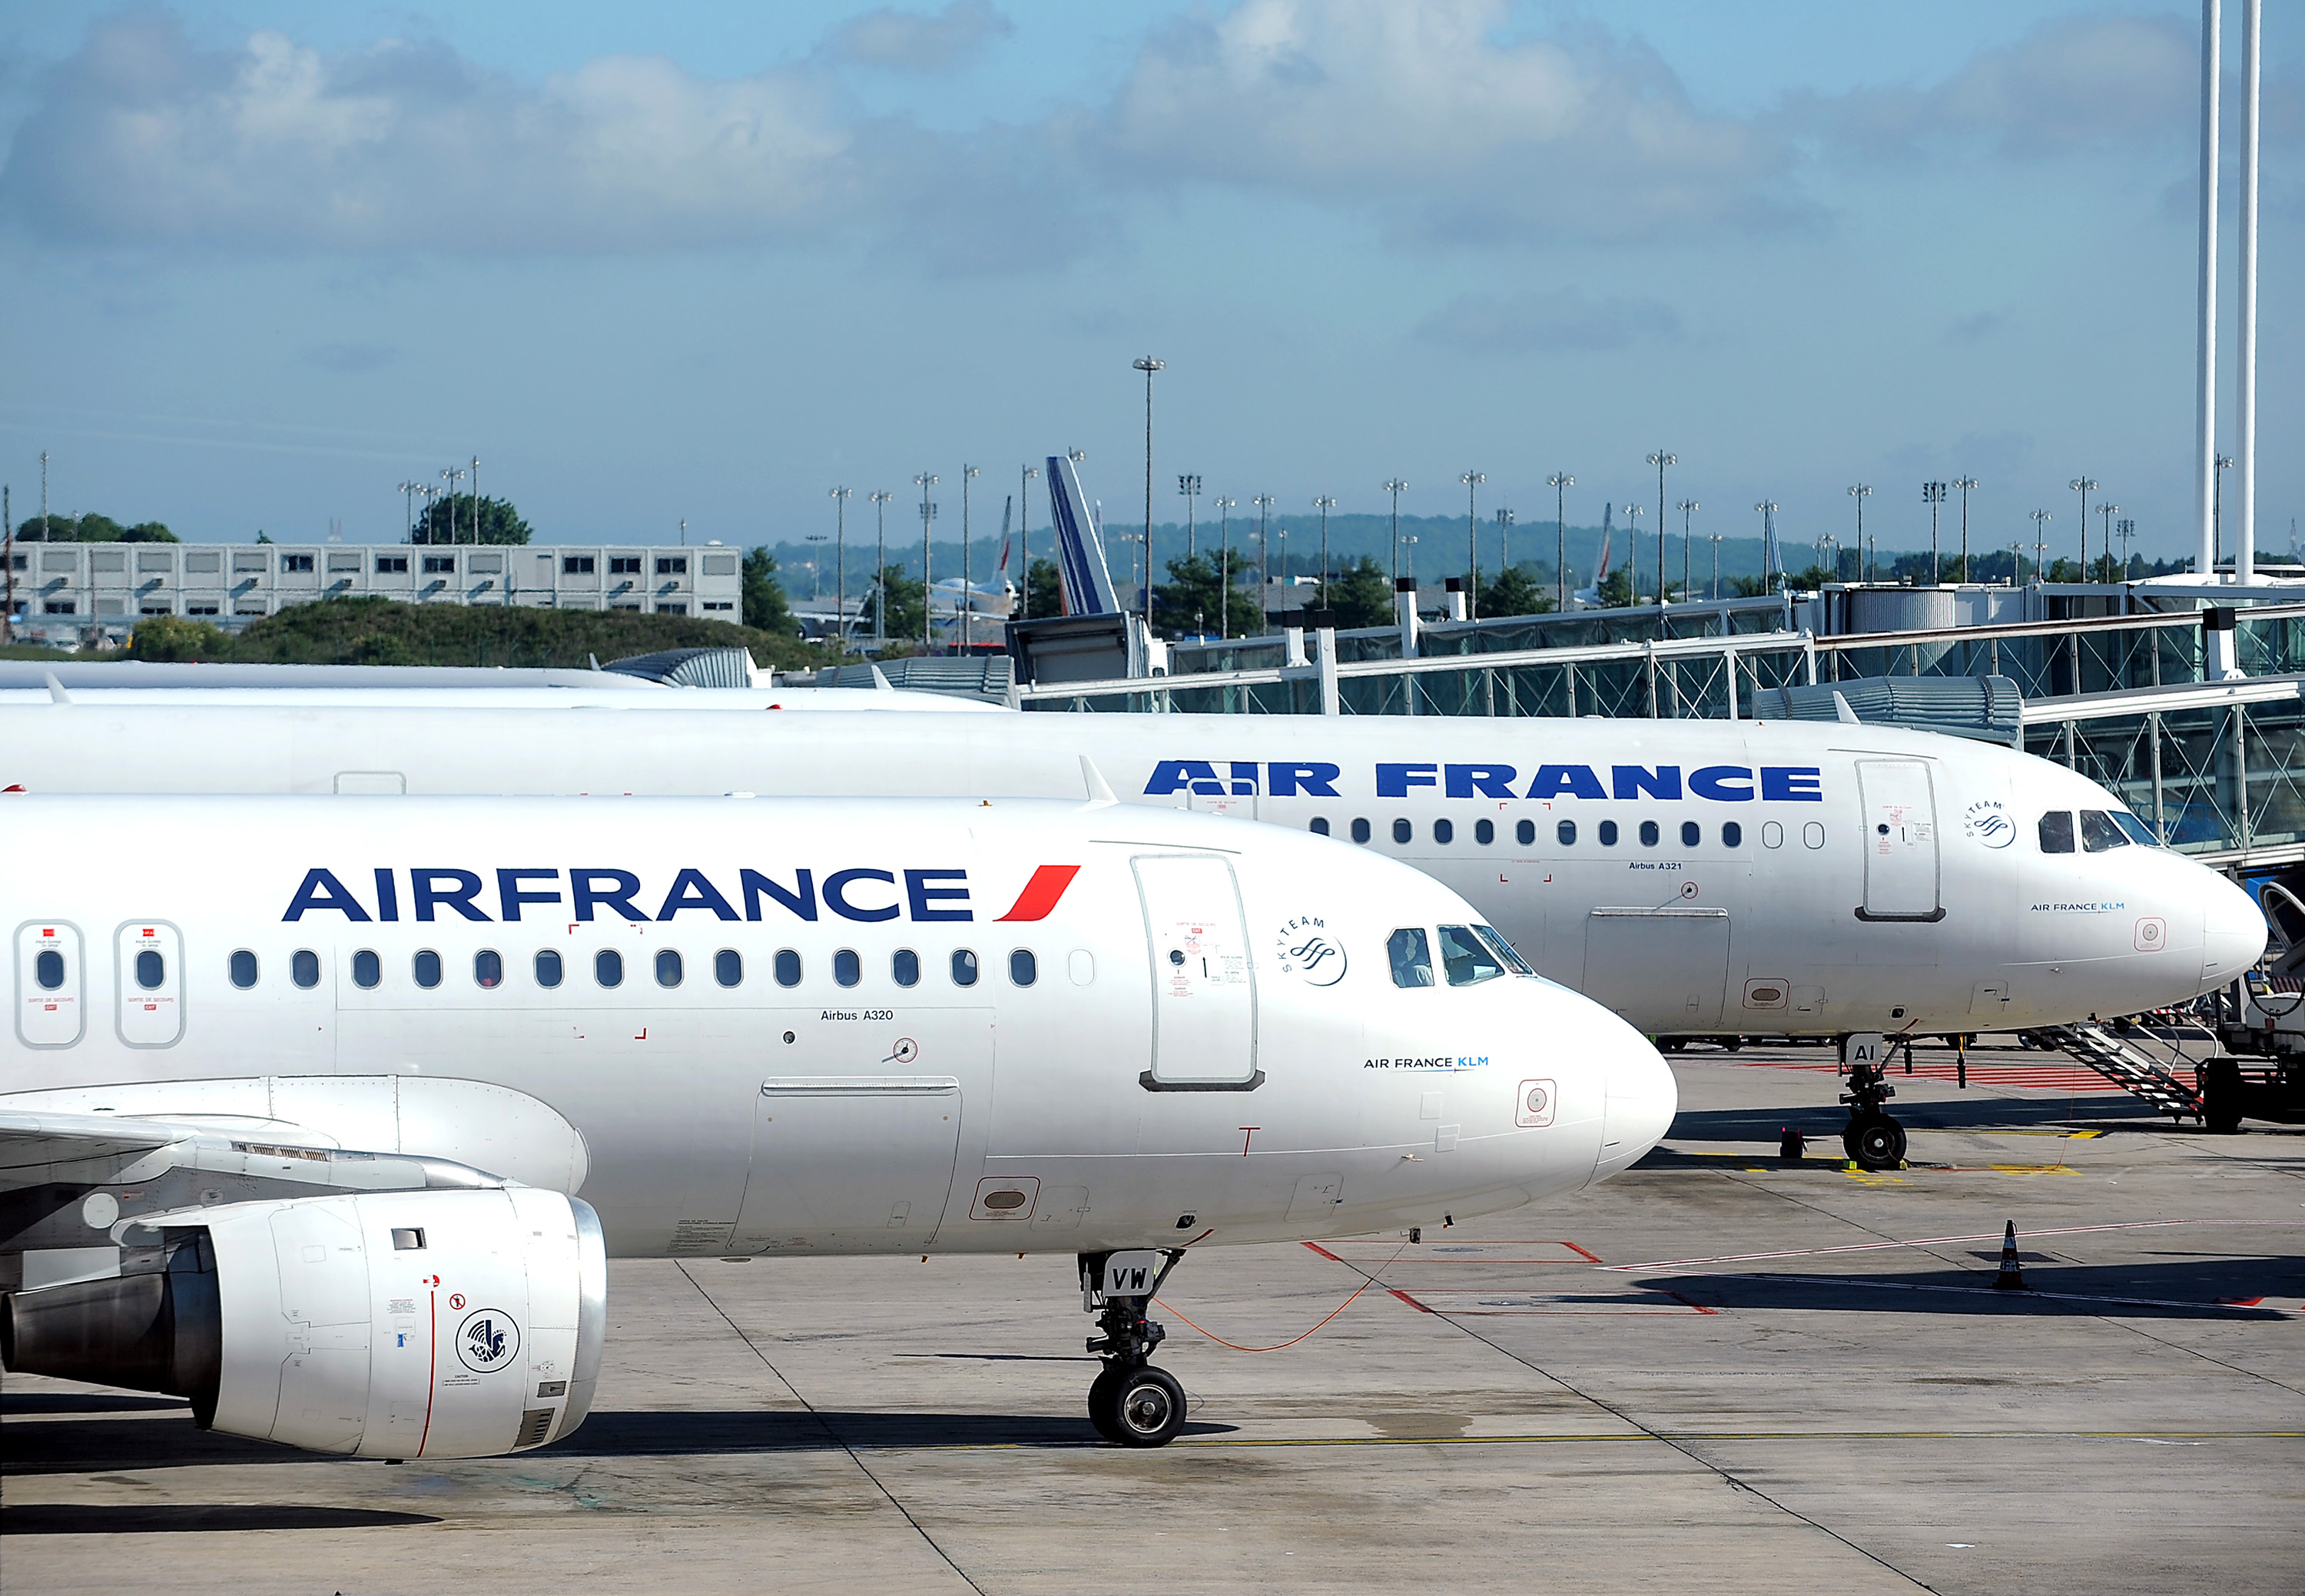 Government says 'No more!' to Air France